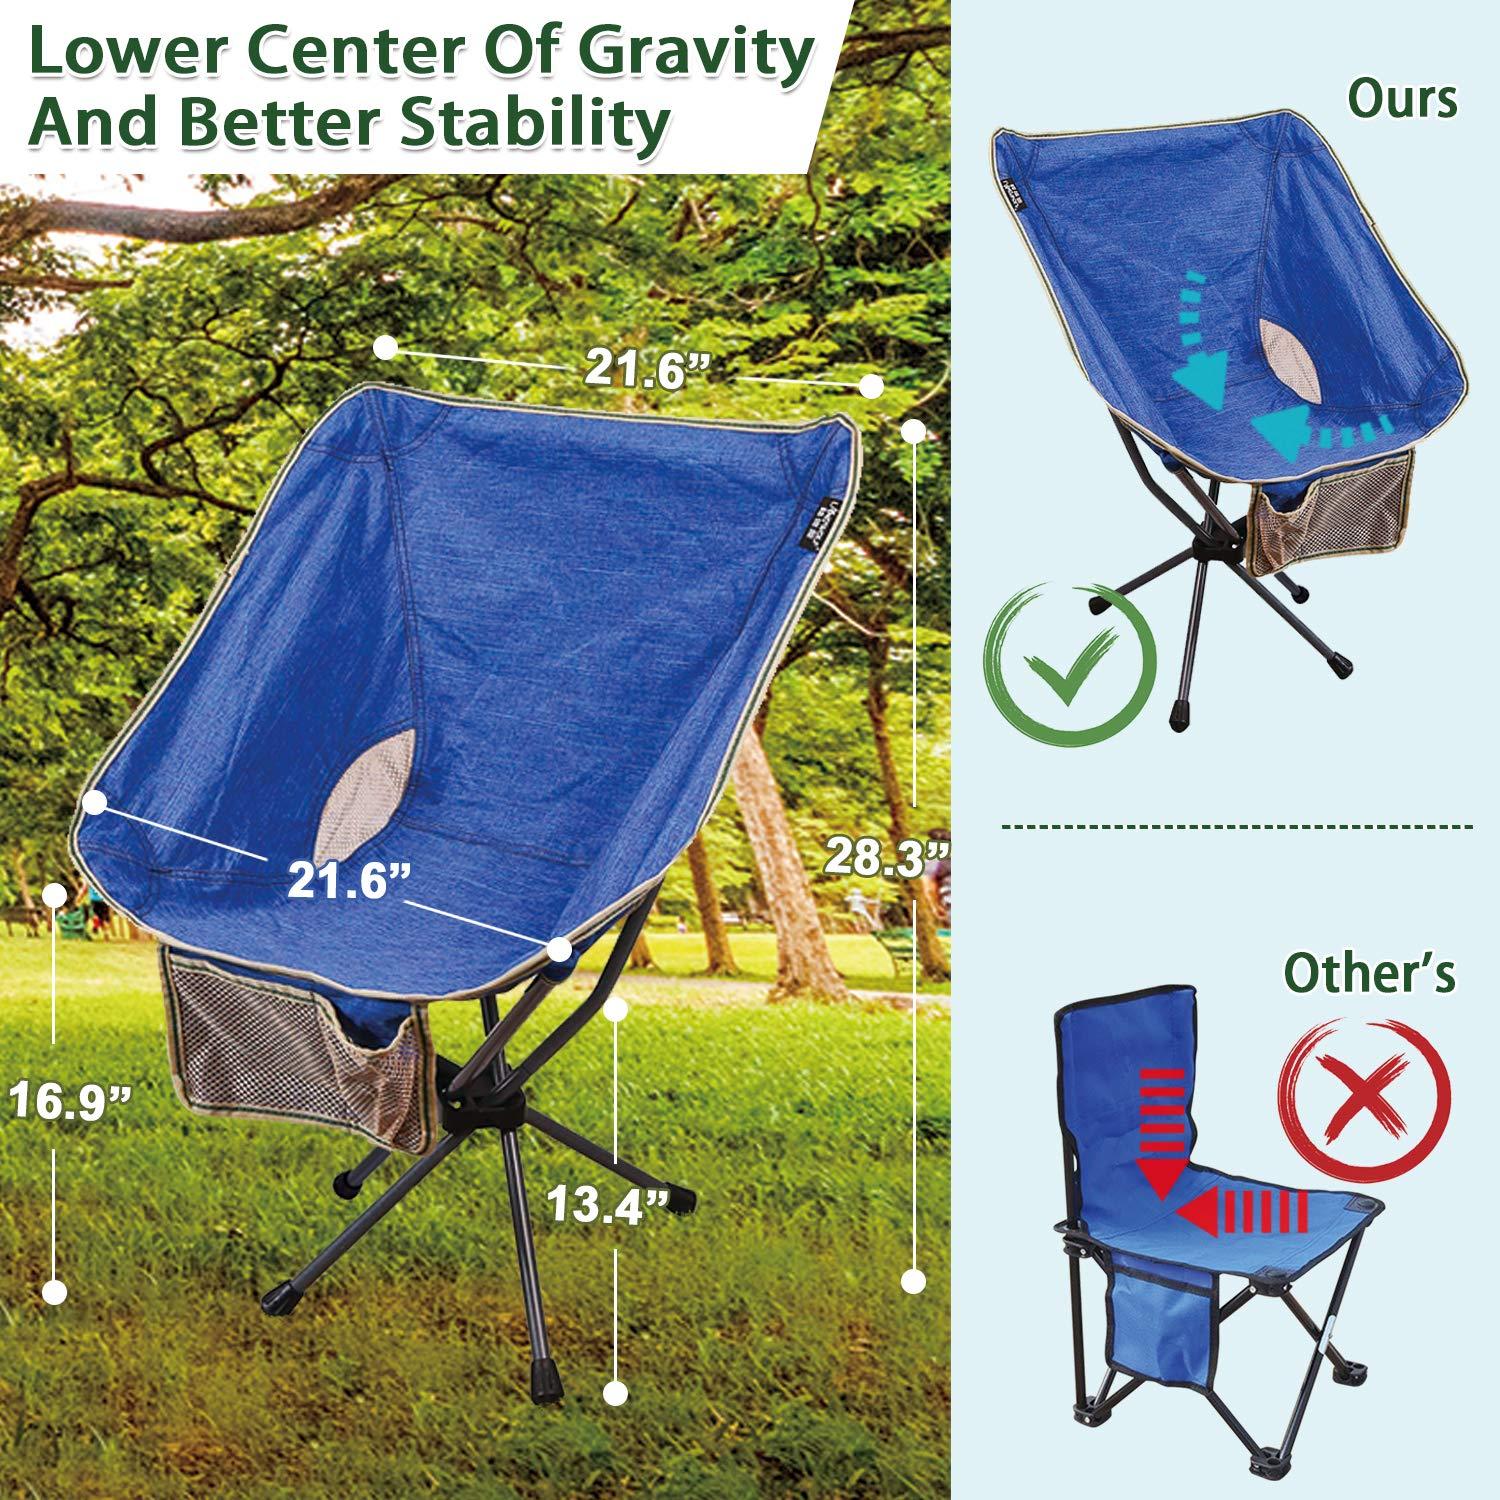 Beach Picnic Travel Outdoor Portable Backpacking Folding Chairs with Carry Bag Hiking Heavy Duty 300 lbs Capacity for BBQ GALSOAR Camping Chairs Fishing